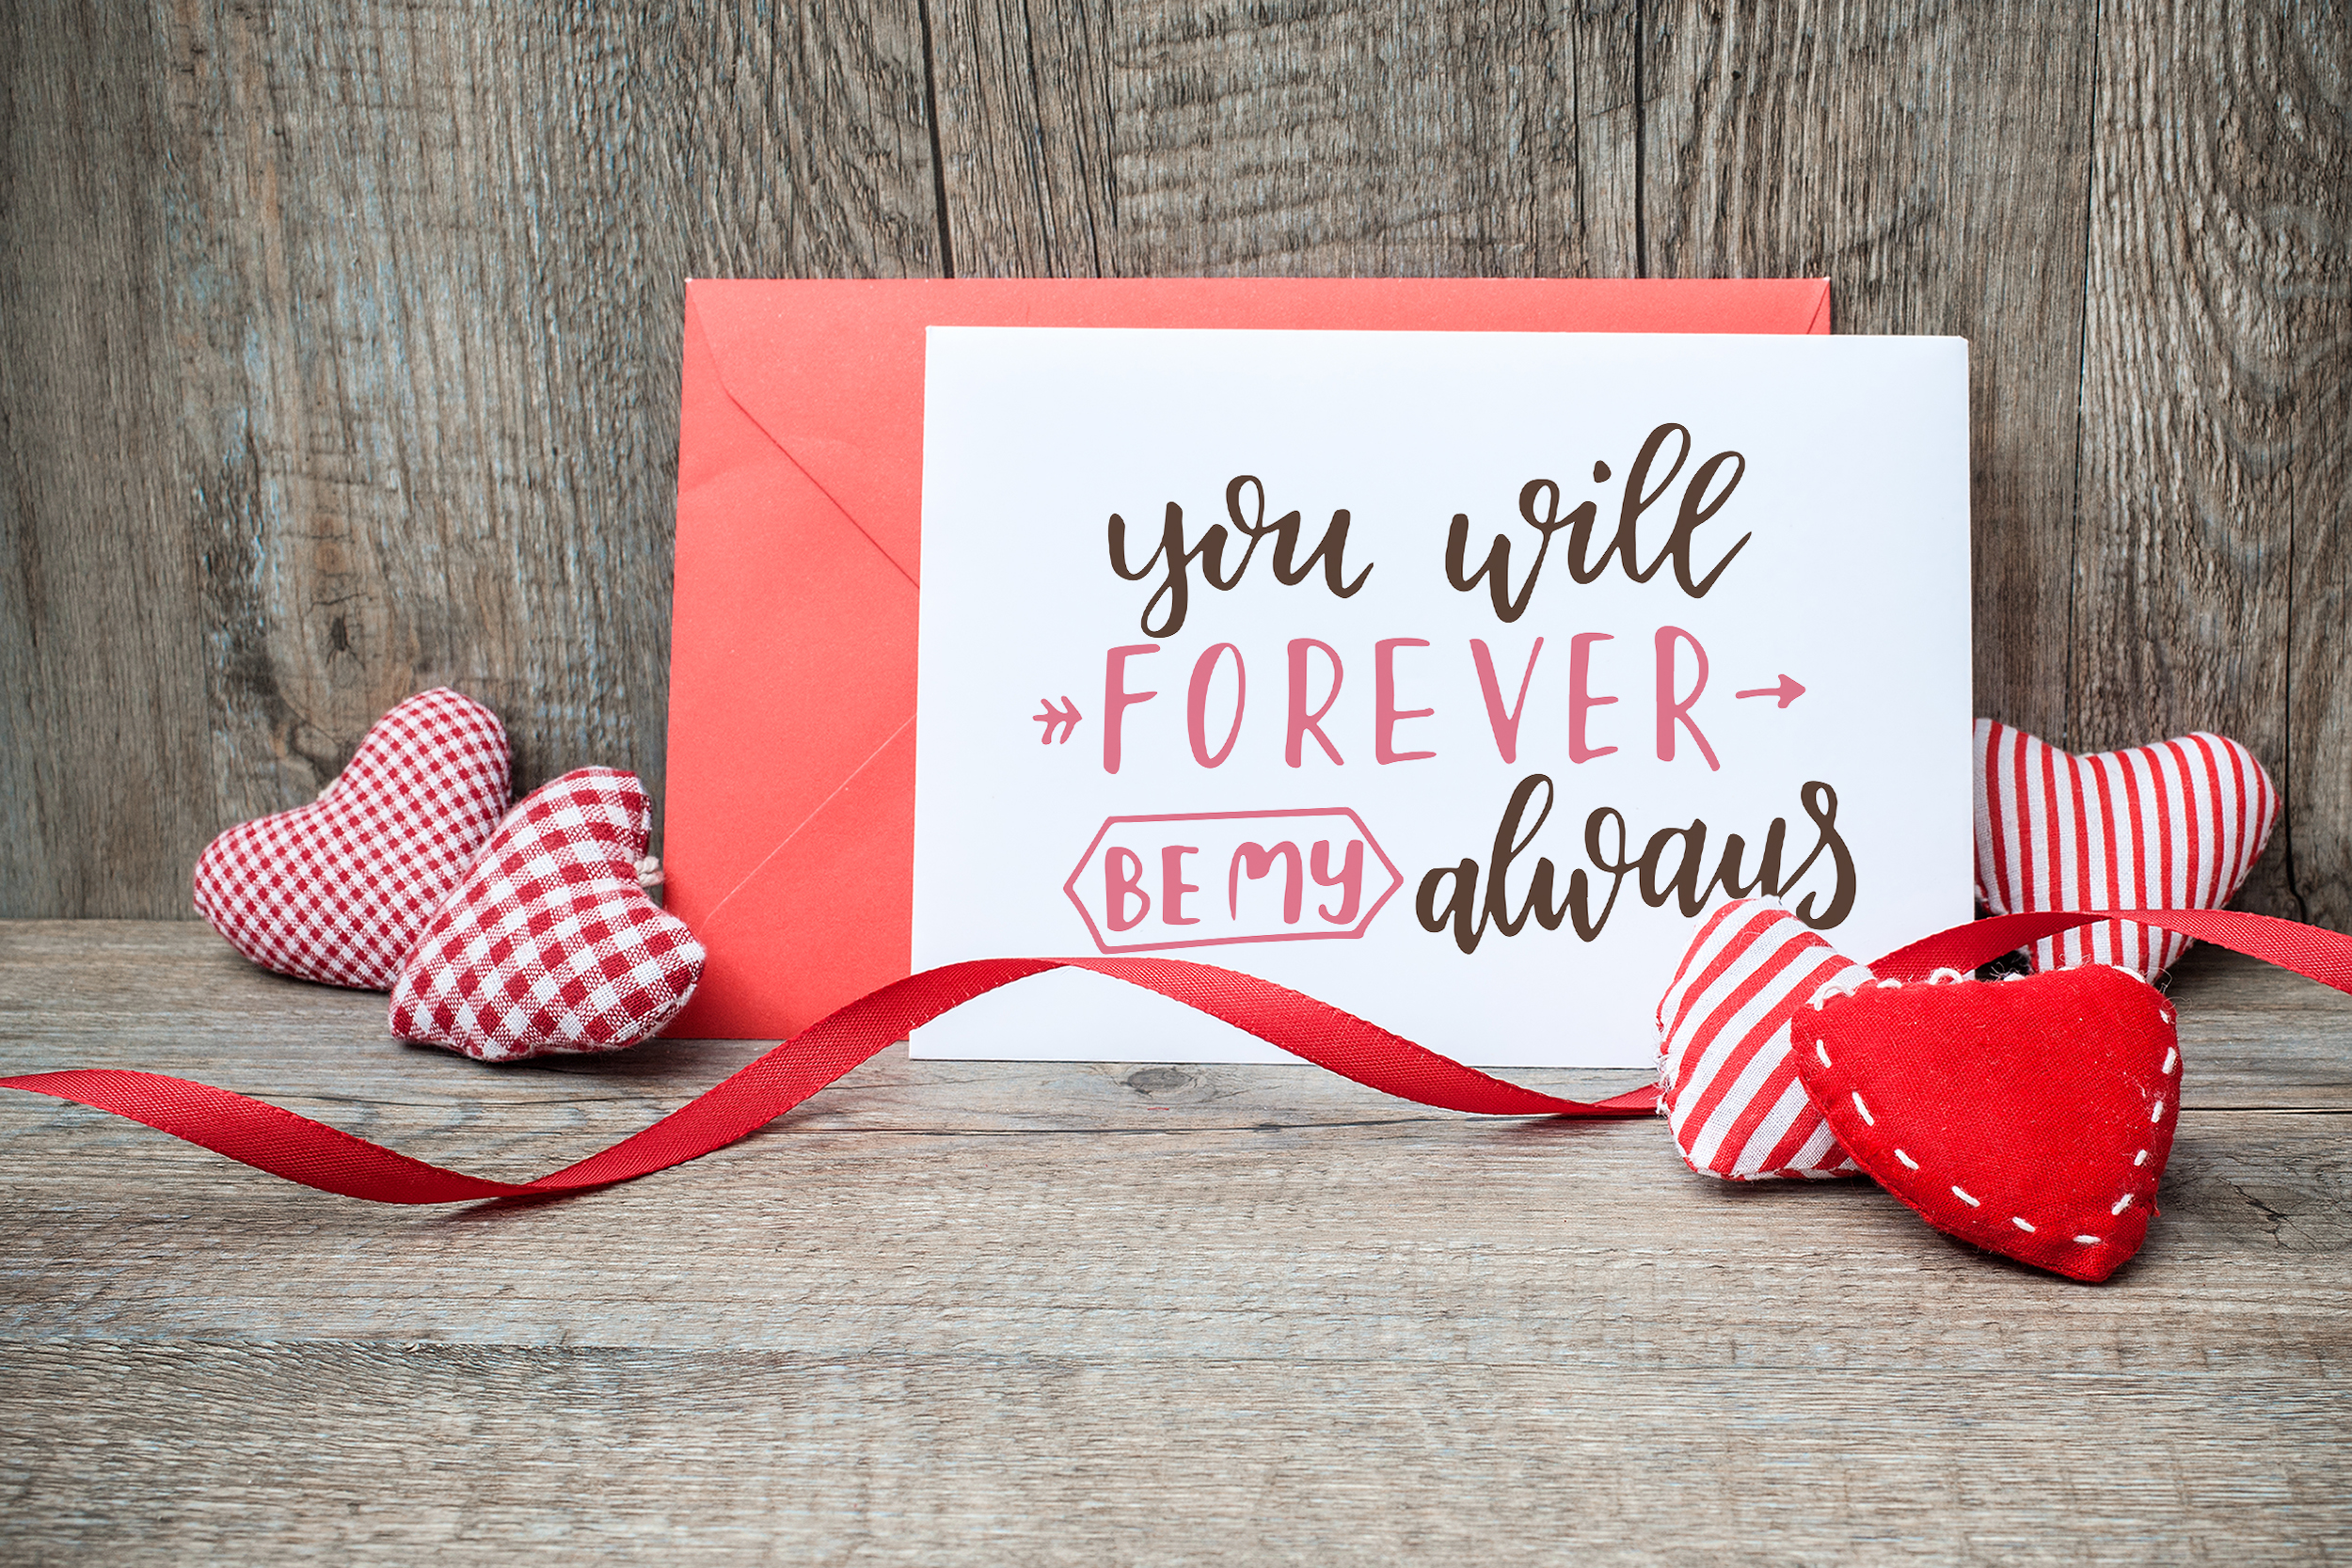 Quotes About Love - Lettering Pack Graphic By tregubova.jul Image 6